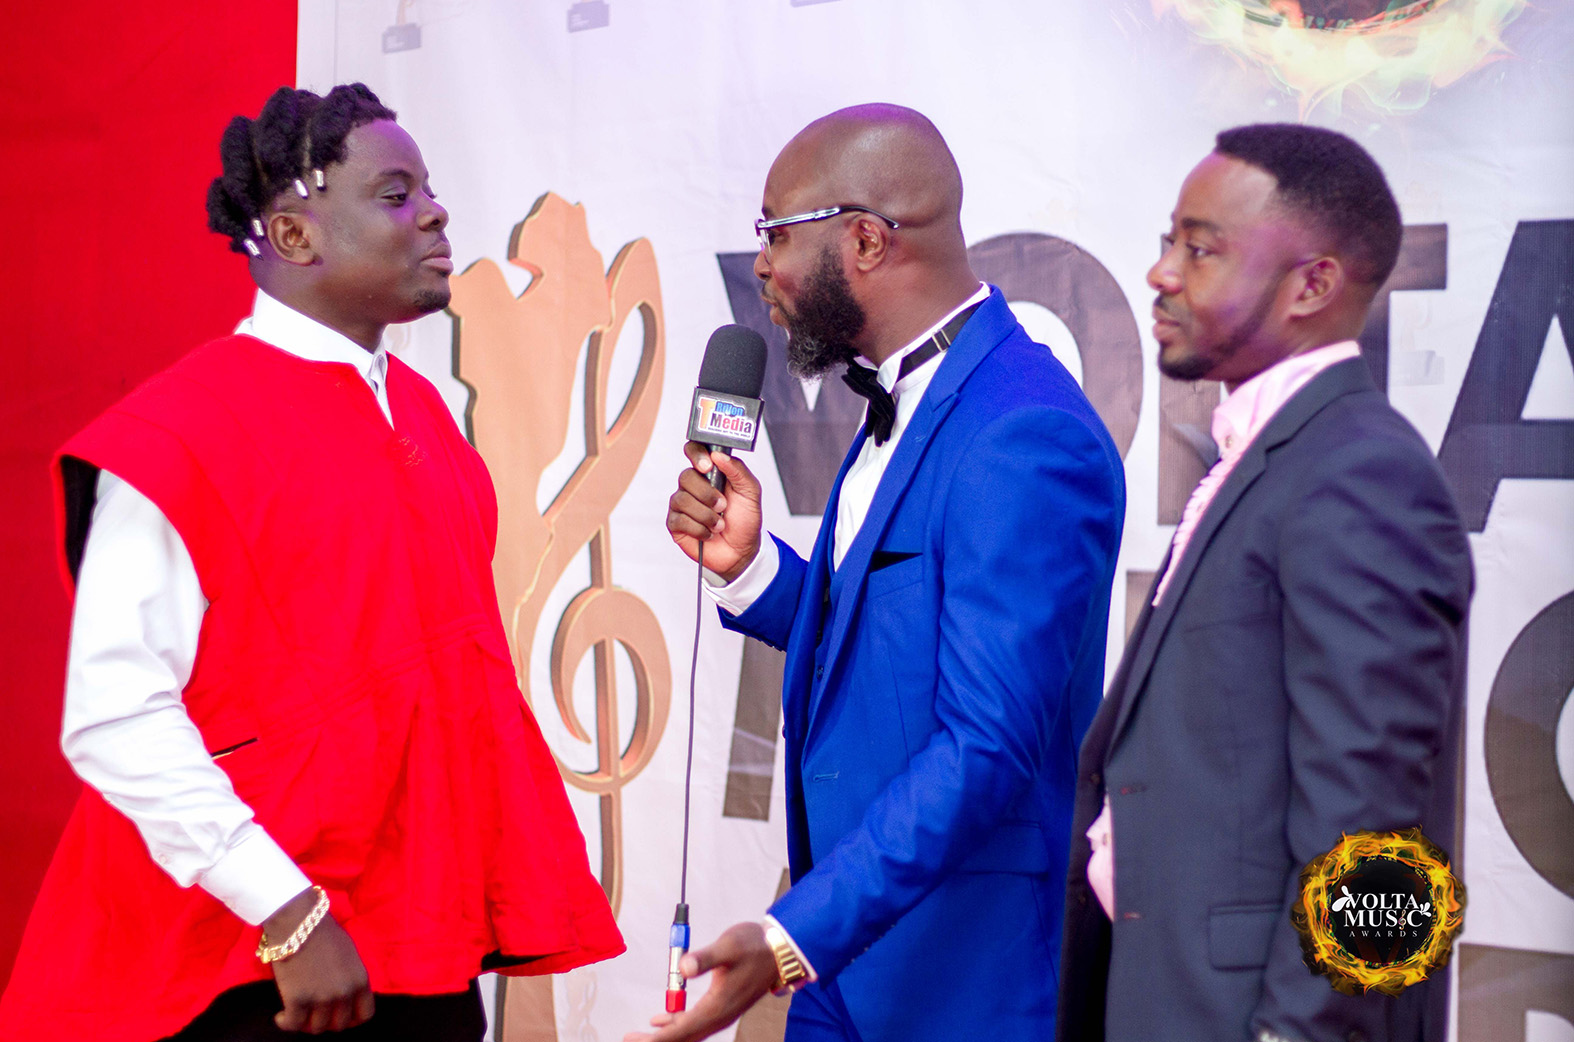 Agbeshie, Kasare, Keeny Ice, and others win at Volta Music Awards